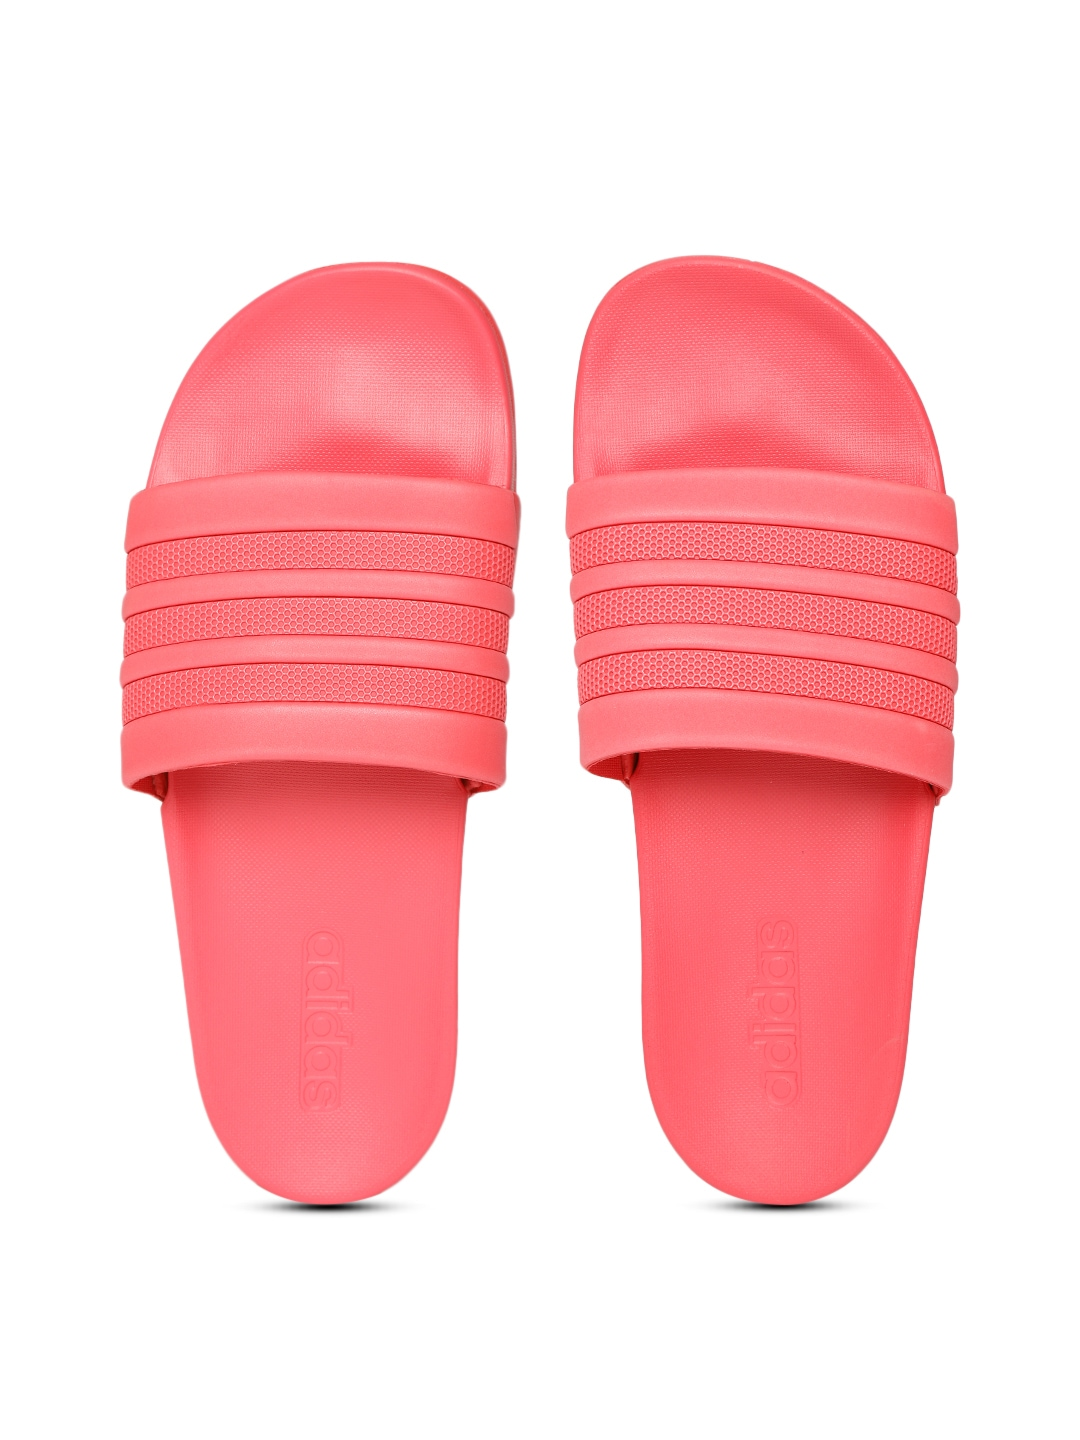 82c50c844dd Women s Adidas Flip Flops - Buy Adidas Flip Flops for Women Online in India